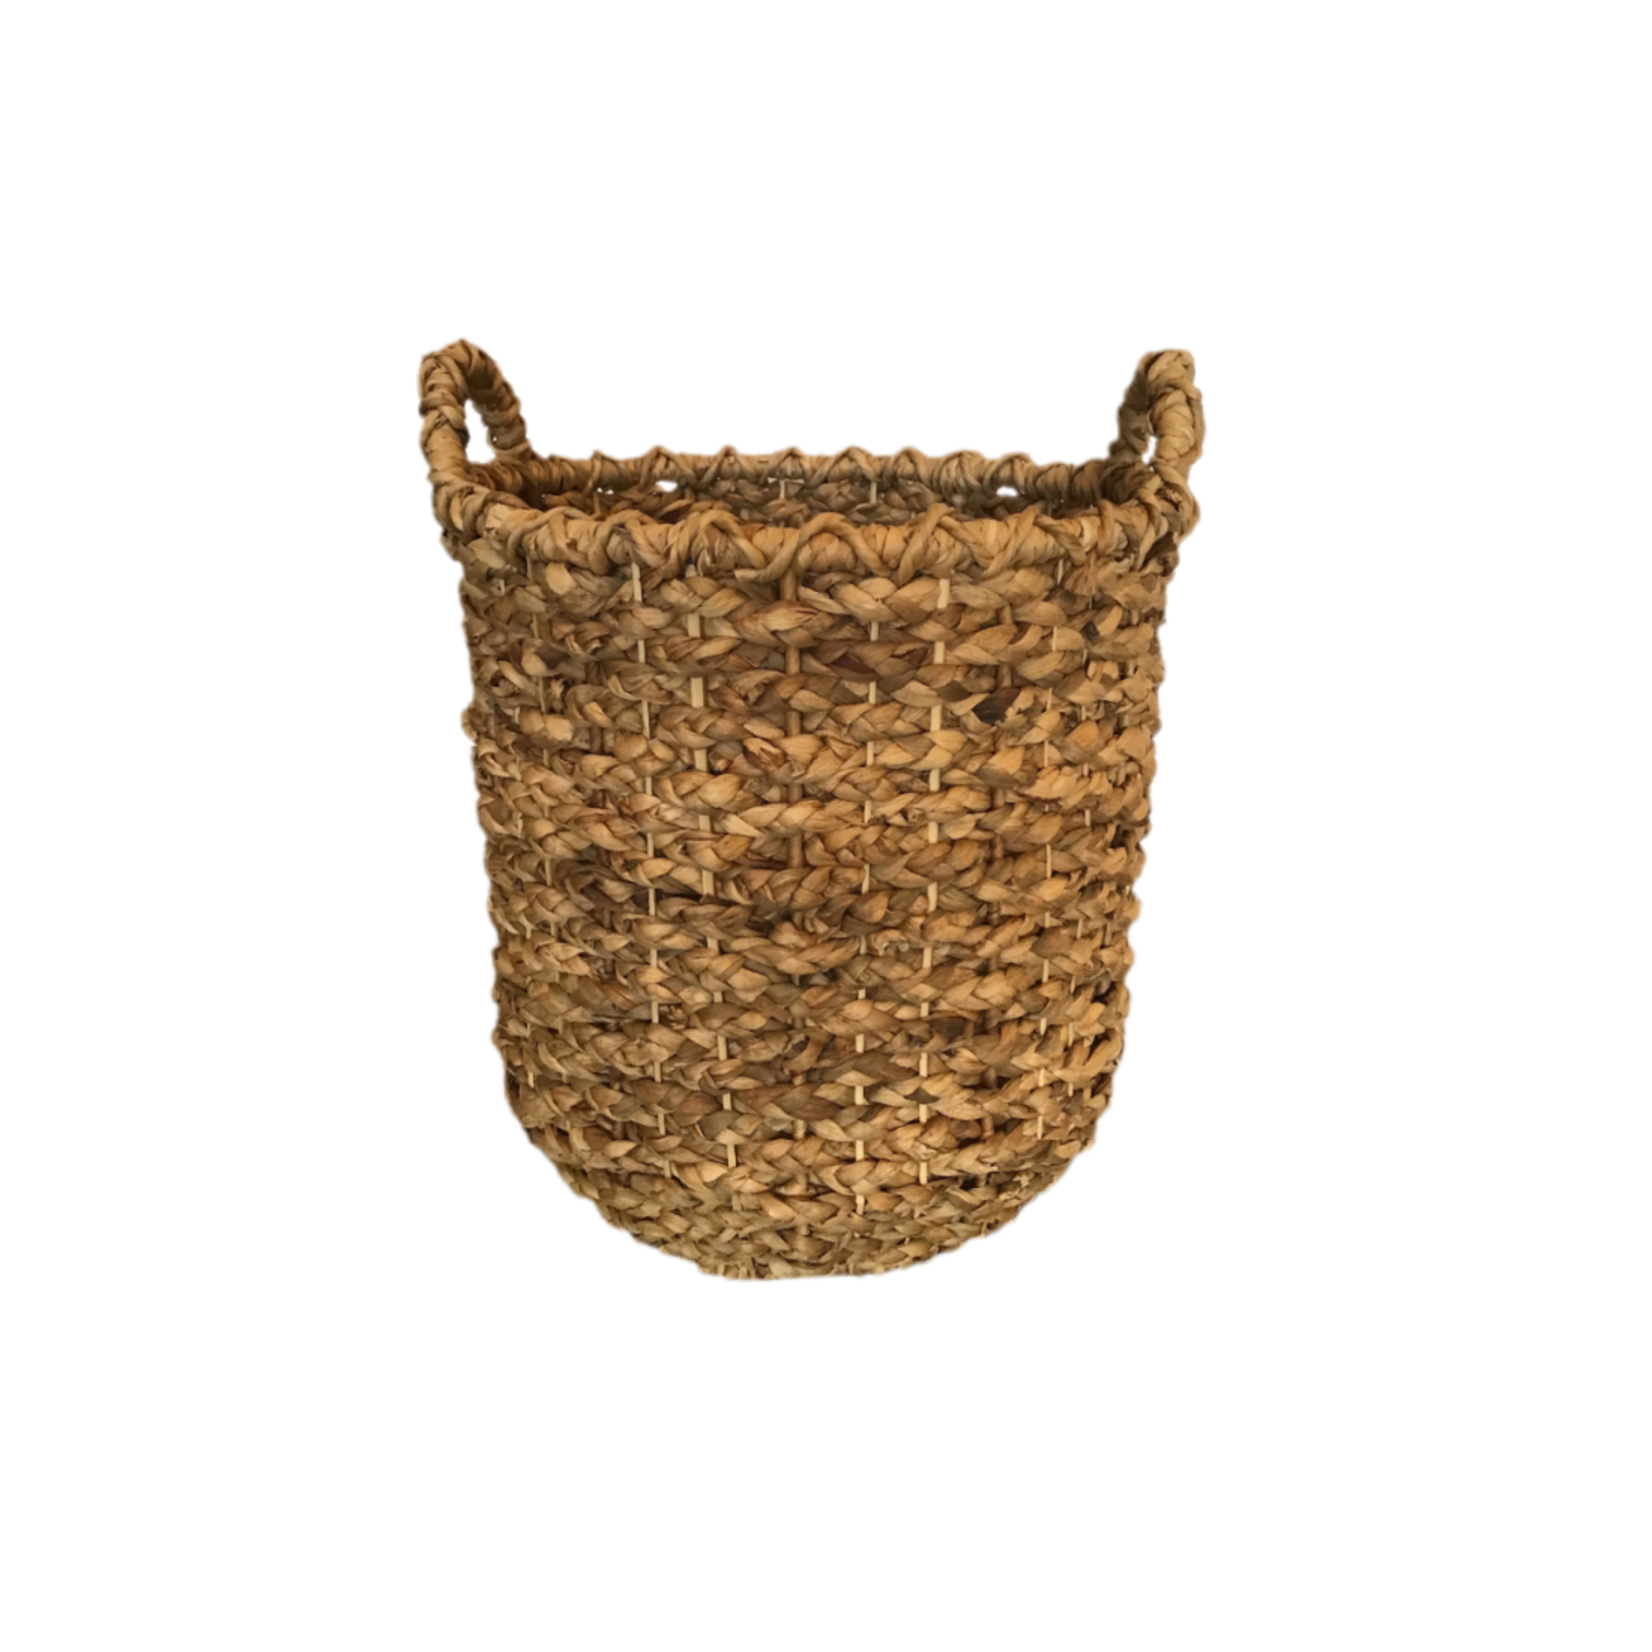 Wyld Blue Home Basket with Handle - Small